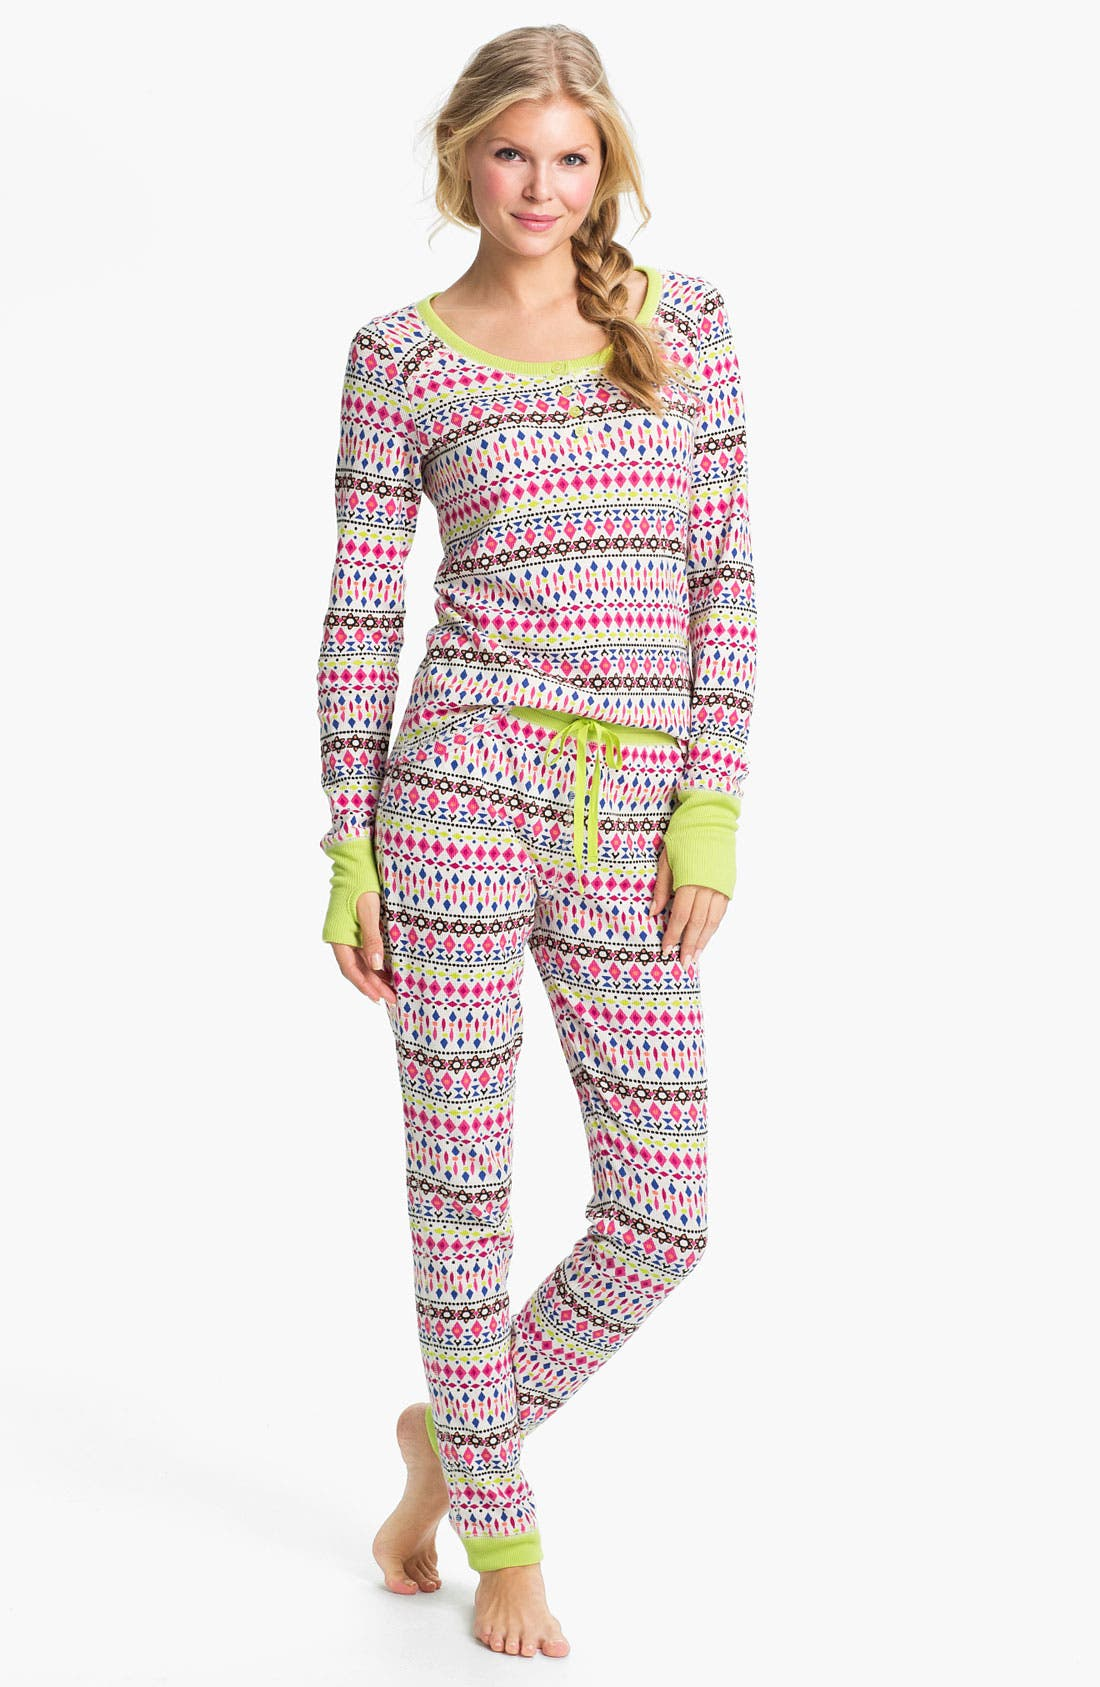 Main Image - Steve Madden 'Cozy Up' Print Thermal Pajamas